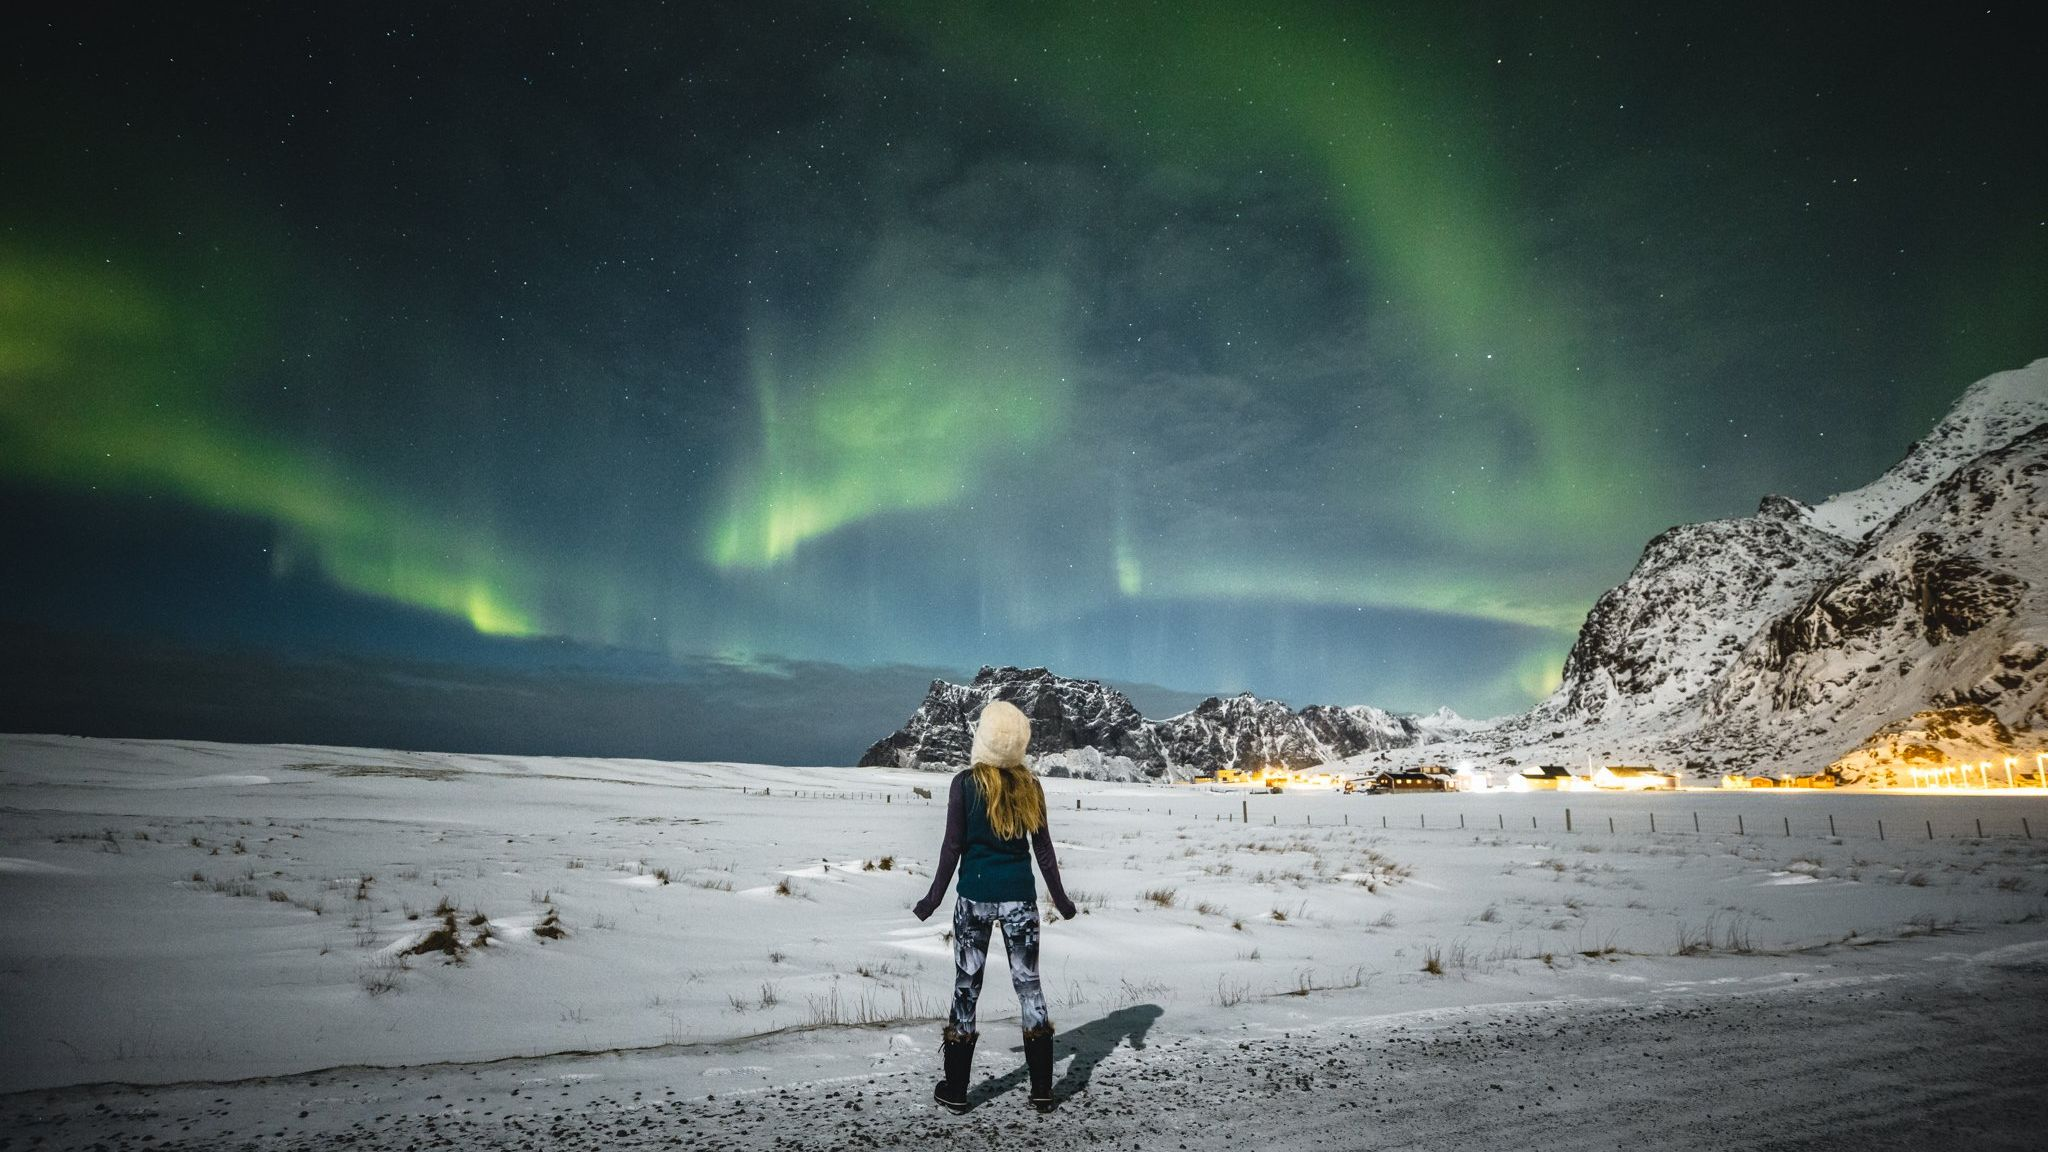 A woman stands on the pale sands of a beach in Norway looking up at the Northern Lights.